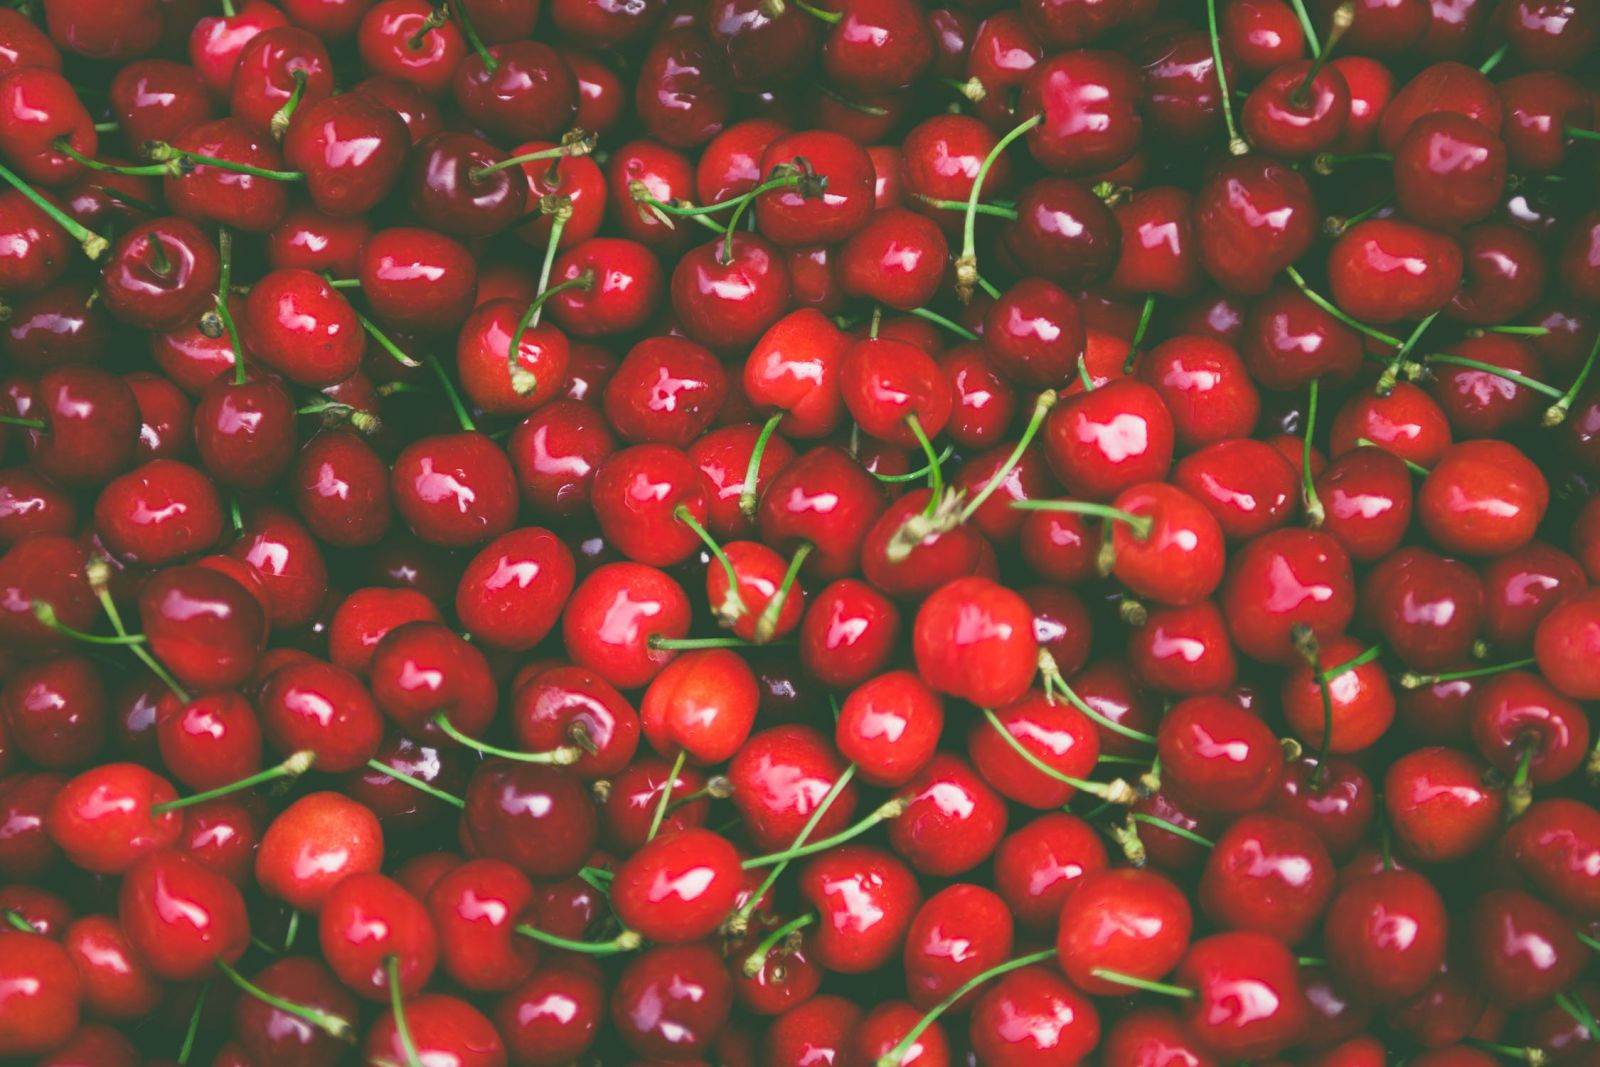 A bowl of cherries for brewing